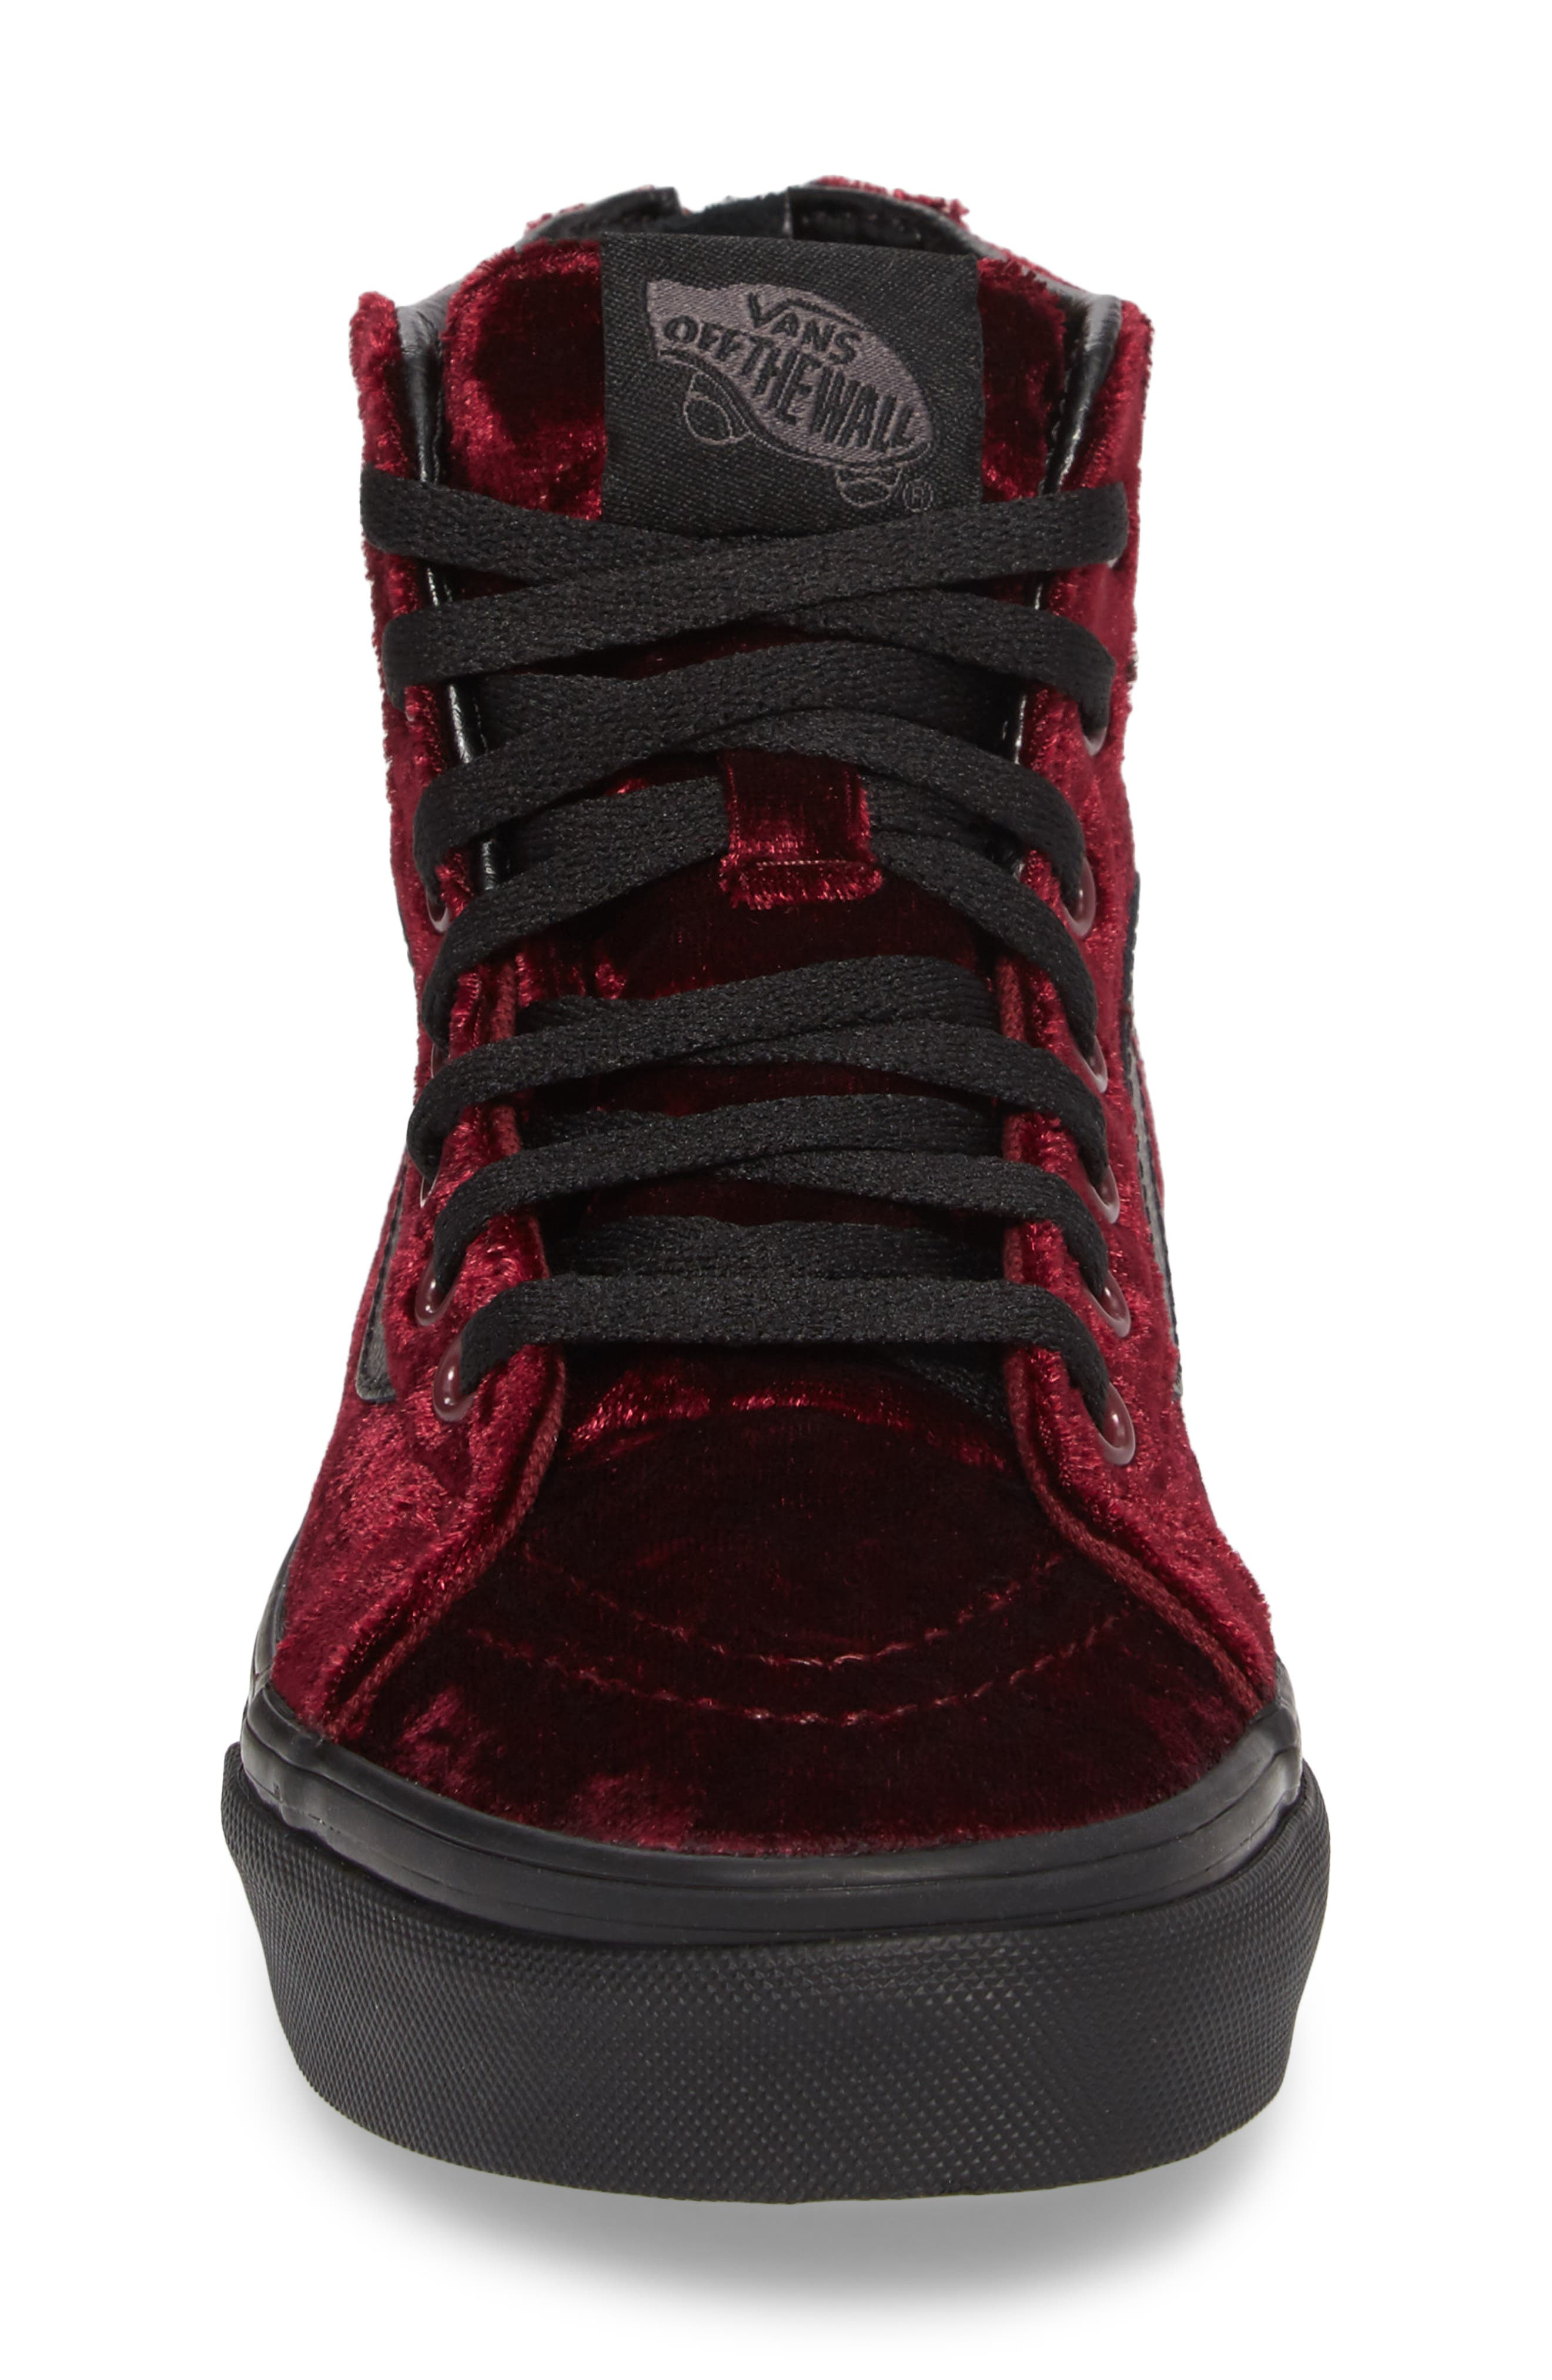 SK8-Hi Zip Sneaker,                             Alternate thumbnail 4, color,                             Red/ Black